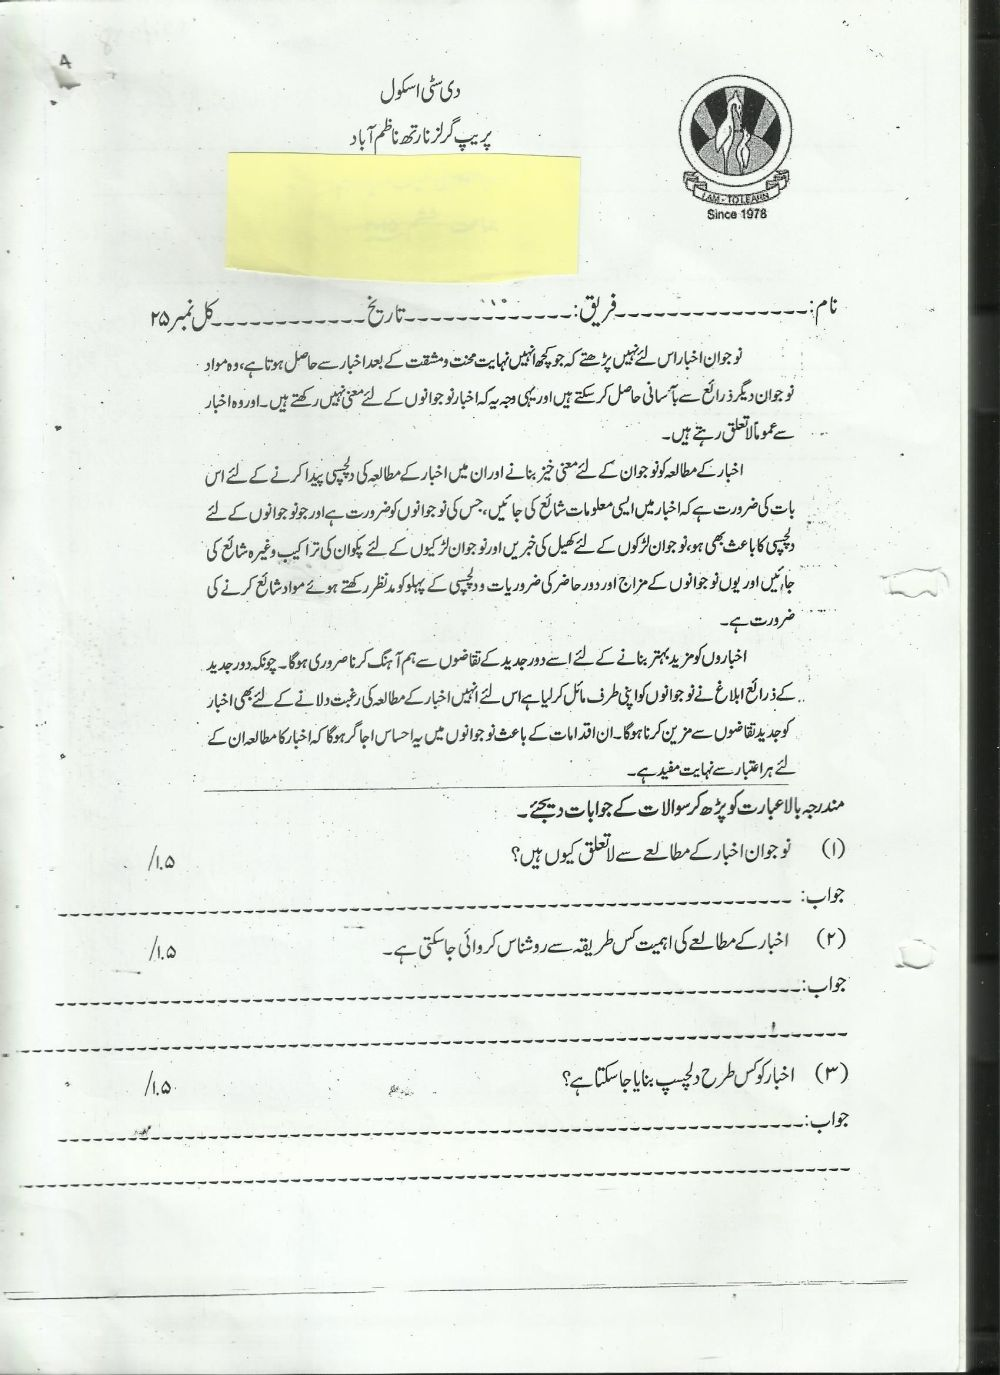 medium resolution of Urdu Tafheem Worksheets For Grade 4 #401902 - Worksheets Library on Best  Worksheets Collection 7730